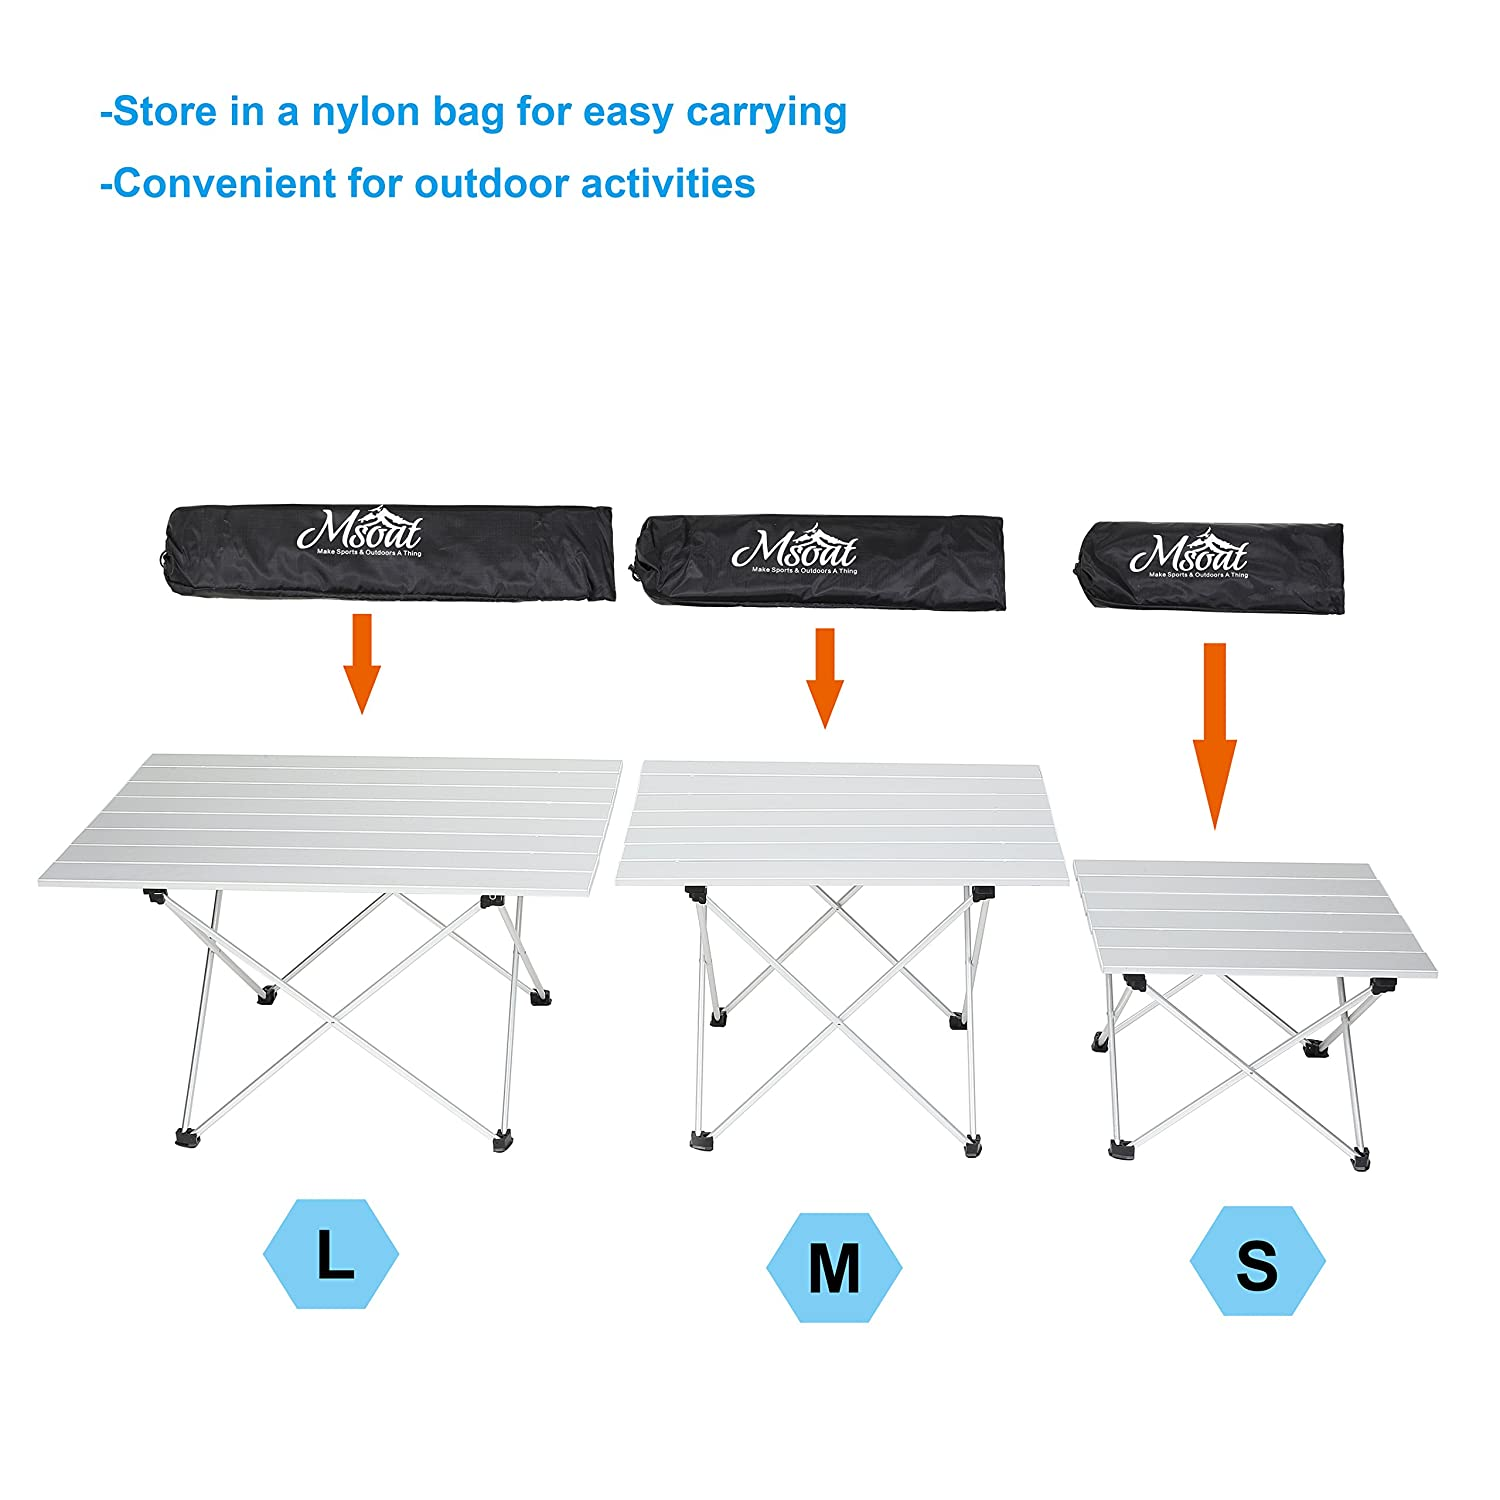 Folding Camping Collapsible Table Aluminum Foldable Portable Compact Ultralight Roll up Small Medium Large Size for Hiking Travel Outdoor Picnic BBQ Beach Garden Medium